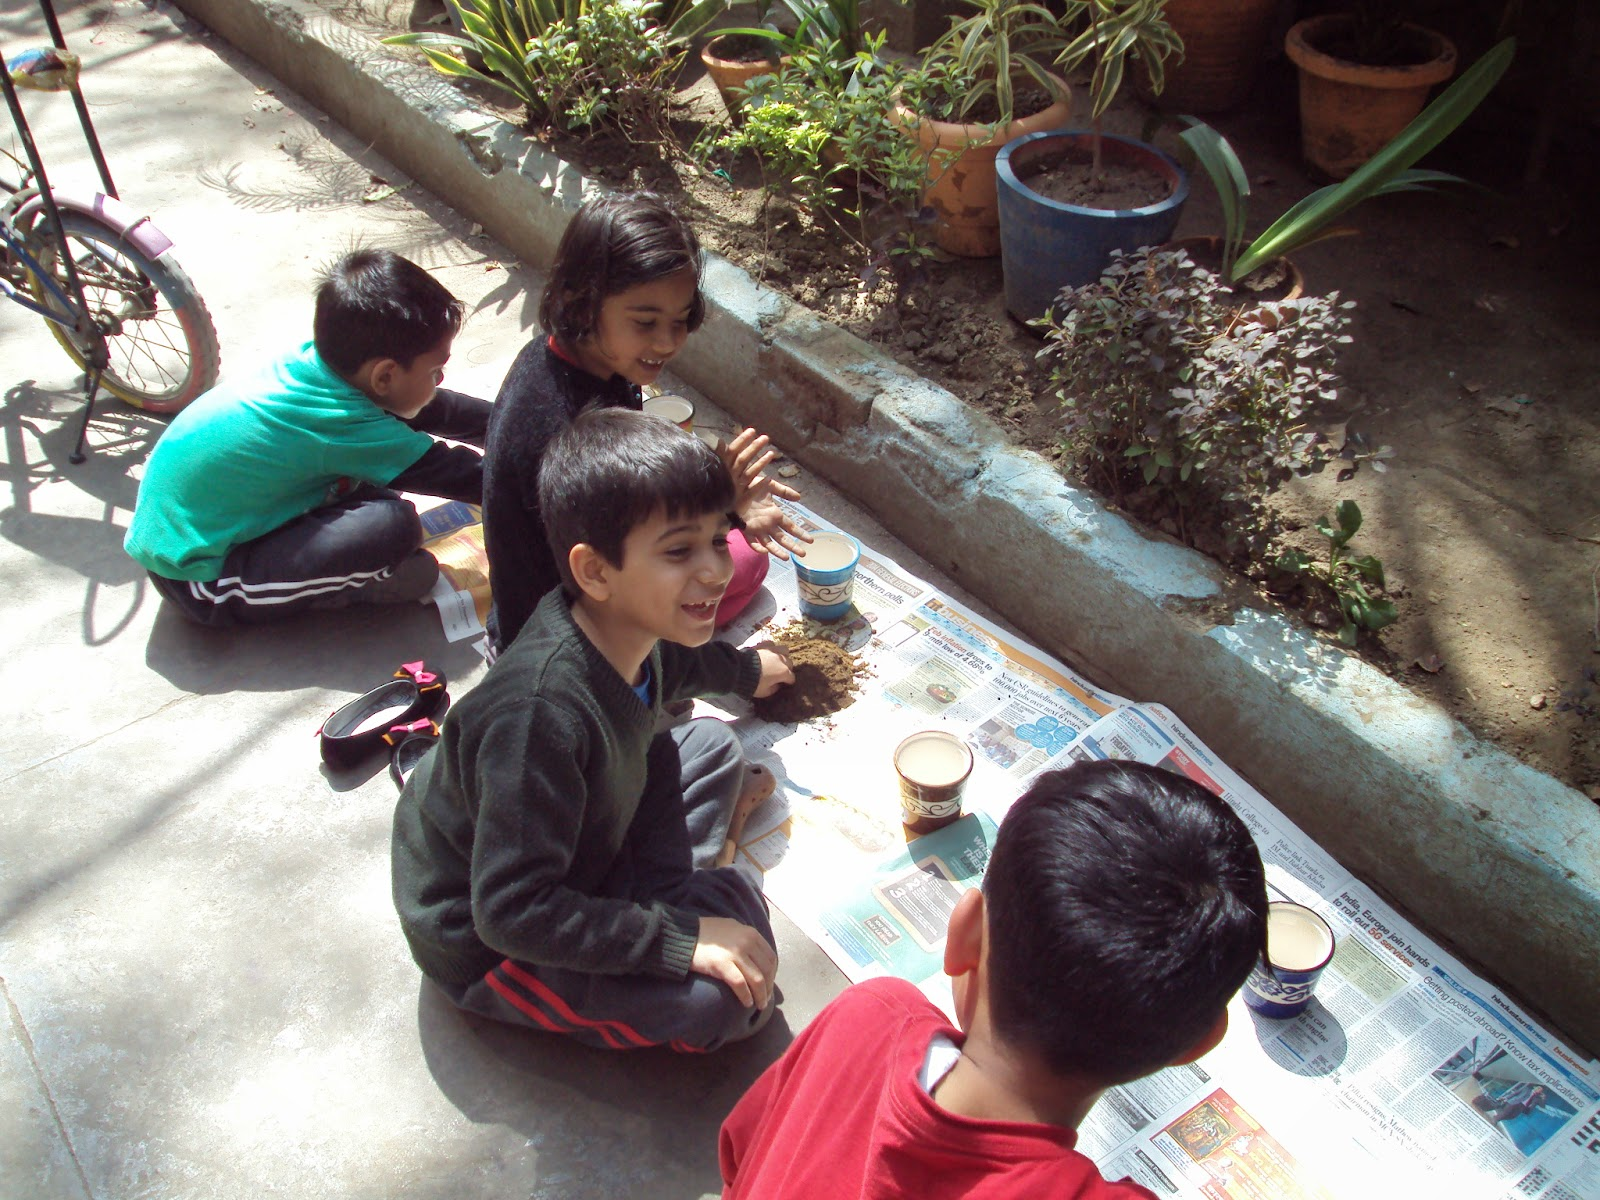 Introducing Young Ones to the Art of Gardening || 'Pot a Plant' Activity. One doesn't always have to plan forever to attain good results, and this is what my sister and I discovered when we conducted a 'Pot a Plant' session for the kids in our colony. We had been talking about this since last year, but when it came to the actual planning and prep work, it barely took us one hour to put it all together - right from collecting the material required, planning the session, inviting the kids, and setting up the venue.Even though the idea came to us almost one year back when I and my sister were talking about doing something apart from our regular work and outside our schedules, we made a decision about the venue, date, content, and participants of the activity in a matter of seconds when we were walking around the gardening shops at the Garden Tourism Festival 2014 organized by Delhi Tourism. We bought 10 little ceramic pots - bright and colourful. And after that everything simply fell into place. We decided upon the weekend - 16 March 2014, Sunday - just one day before Holi, and the venue would be our locality in Rohini. The session would be conducted at around 11 am, which won't be too early for the kids, nor too late so that their families could still utilize the rest of the day for any other outing they plan to do. We decided that we would take the kids through the simplest possible process of potting a plant. The saplings that would be potted should be attractive to the kids, and should give gratifying results in a short period of time. In other words, something that would flower early. So we zeroed in on Portulaca Grandiflora, commonly known as the 10 o' clock plant because its flowers bloom at around that time and close within a couple of hours. It took us half an hour to go pick up the saplings, compost, and soil from our local nursery, and a further 15 minutes to pick up fruit juice and snacks for the kids, so that they can re-energise themselves after working hard in the garden. And once everything was set, we sent out the invitations to the kids - mostly my nephew's friends between 6 to 9 years of age. We invited 9 kids and then we could only sit and wait for the time to arrive - our exciting increasing with each passing minute. We were hoping that the children would also be as excited as us. And we were happy to see almost all kids arrive at the venue 10 minutes before time and waiting for us to start the activity. We had invited 9, but 12 arrived. We had to drill holes in three ceramic glasses from our kitchen and give them to the kids that arrived last. Because of their punctuality, we were able to start dot on time. We started with talking about why it is important to have plants around us and then asking the kids whether any of them have ever potted a plant. Some of them had done it for some school projects, but most of the kids were new to this. We told them about Pots, crocks (little pieces of broken pots placed above the hole at the bottom to help with drainage of excess water), watering can, soil, and compost, and were delighted by their enthusiasm, interest, attentiveness, and quick grasp. When it came to the practicals, the kids were required to stand in queues several times and demonstrate a lot of patience. Not one of them tried to break the queue. They observed carefully and executed perfectly. The only complain we heard from them was about the smell of compost. By the end of it, all kids had selected their favourite pots, placed crocks in them, mixed soil and compost, and planted the sapling. We then explained to them about the process of watering and how to decide when their plants needed water. We told them about the benefits of sunlight and the harms of overwatering. We also prepared them about the natural lifecycle of the plant, and told them that the plant would die at the end of summers and they should not feel disheartened when it did. The kids promised to take care of their plants and to let us know when the first flower blooms. Kids were happy and really charged up. All this while, they had been sitting on the ground and getting their hands dirty. Once they were done, they washed their hands properly with soap and grabbed their juices and snacks. They were highly protective of their plants and left us with cheerful goodbyes, their faces glowing. Once they had left, we realized that several people had been looking down from their windows and observing us and the kids. One of them shouted